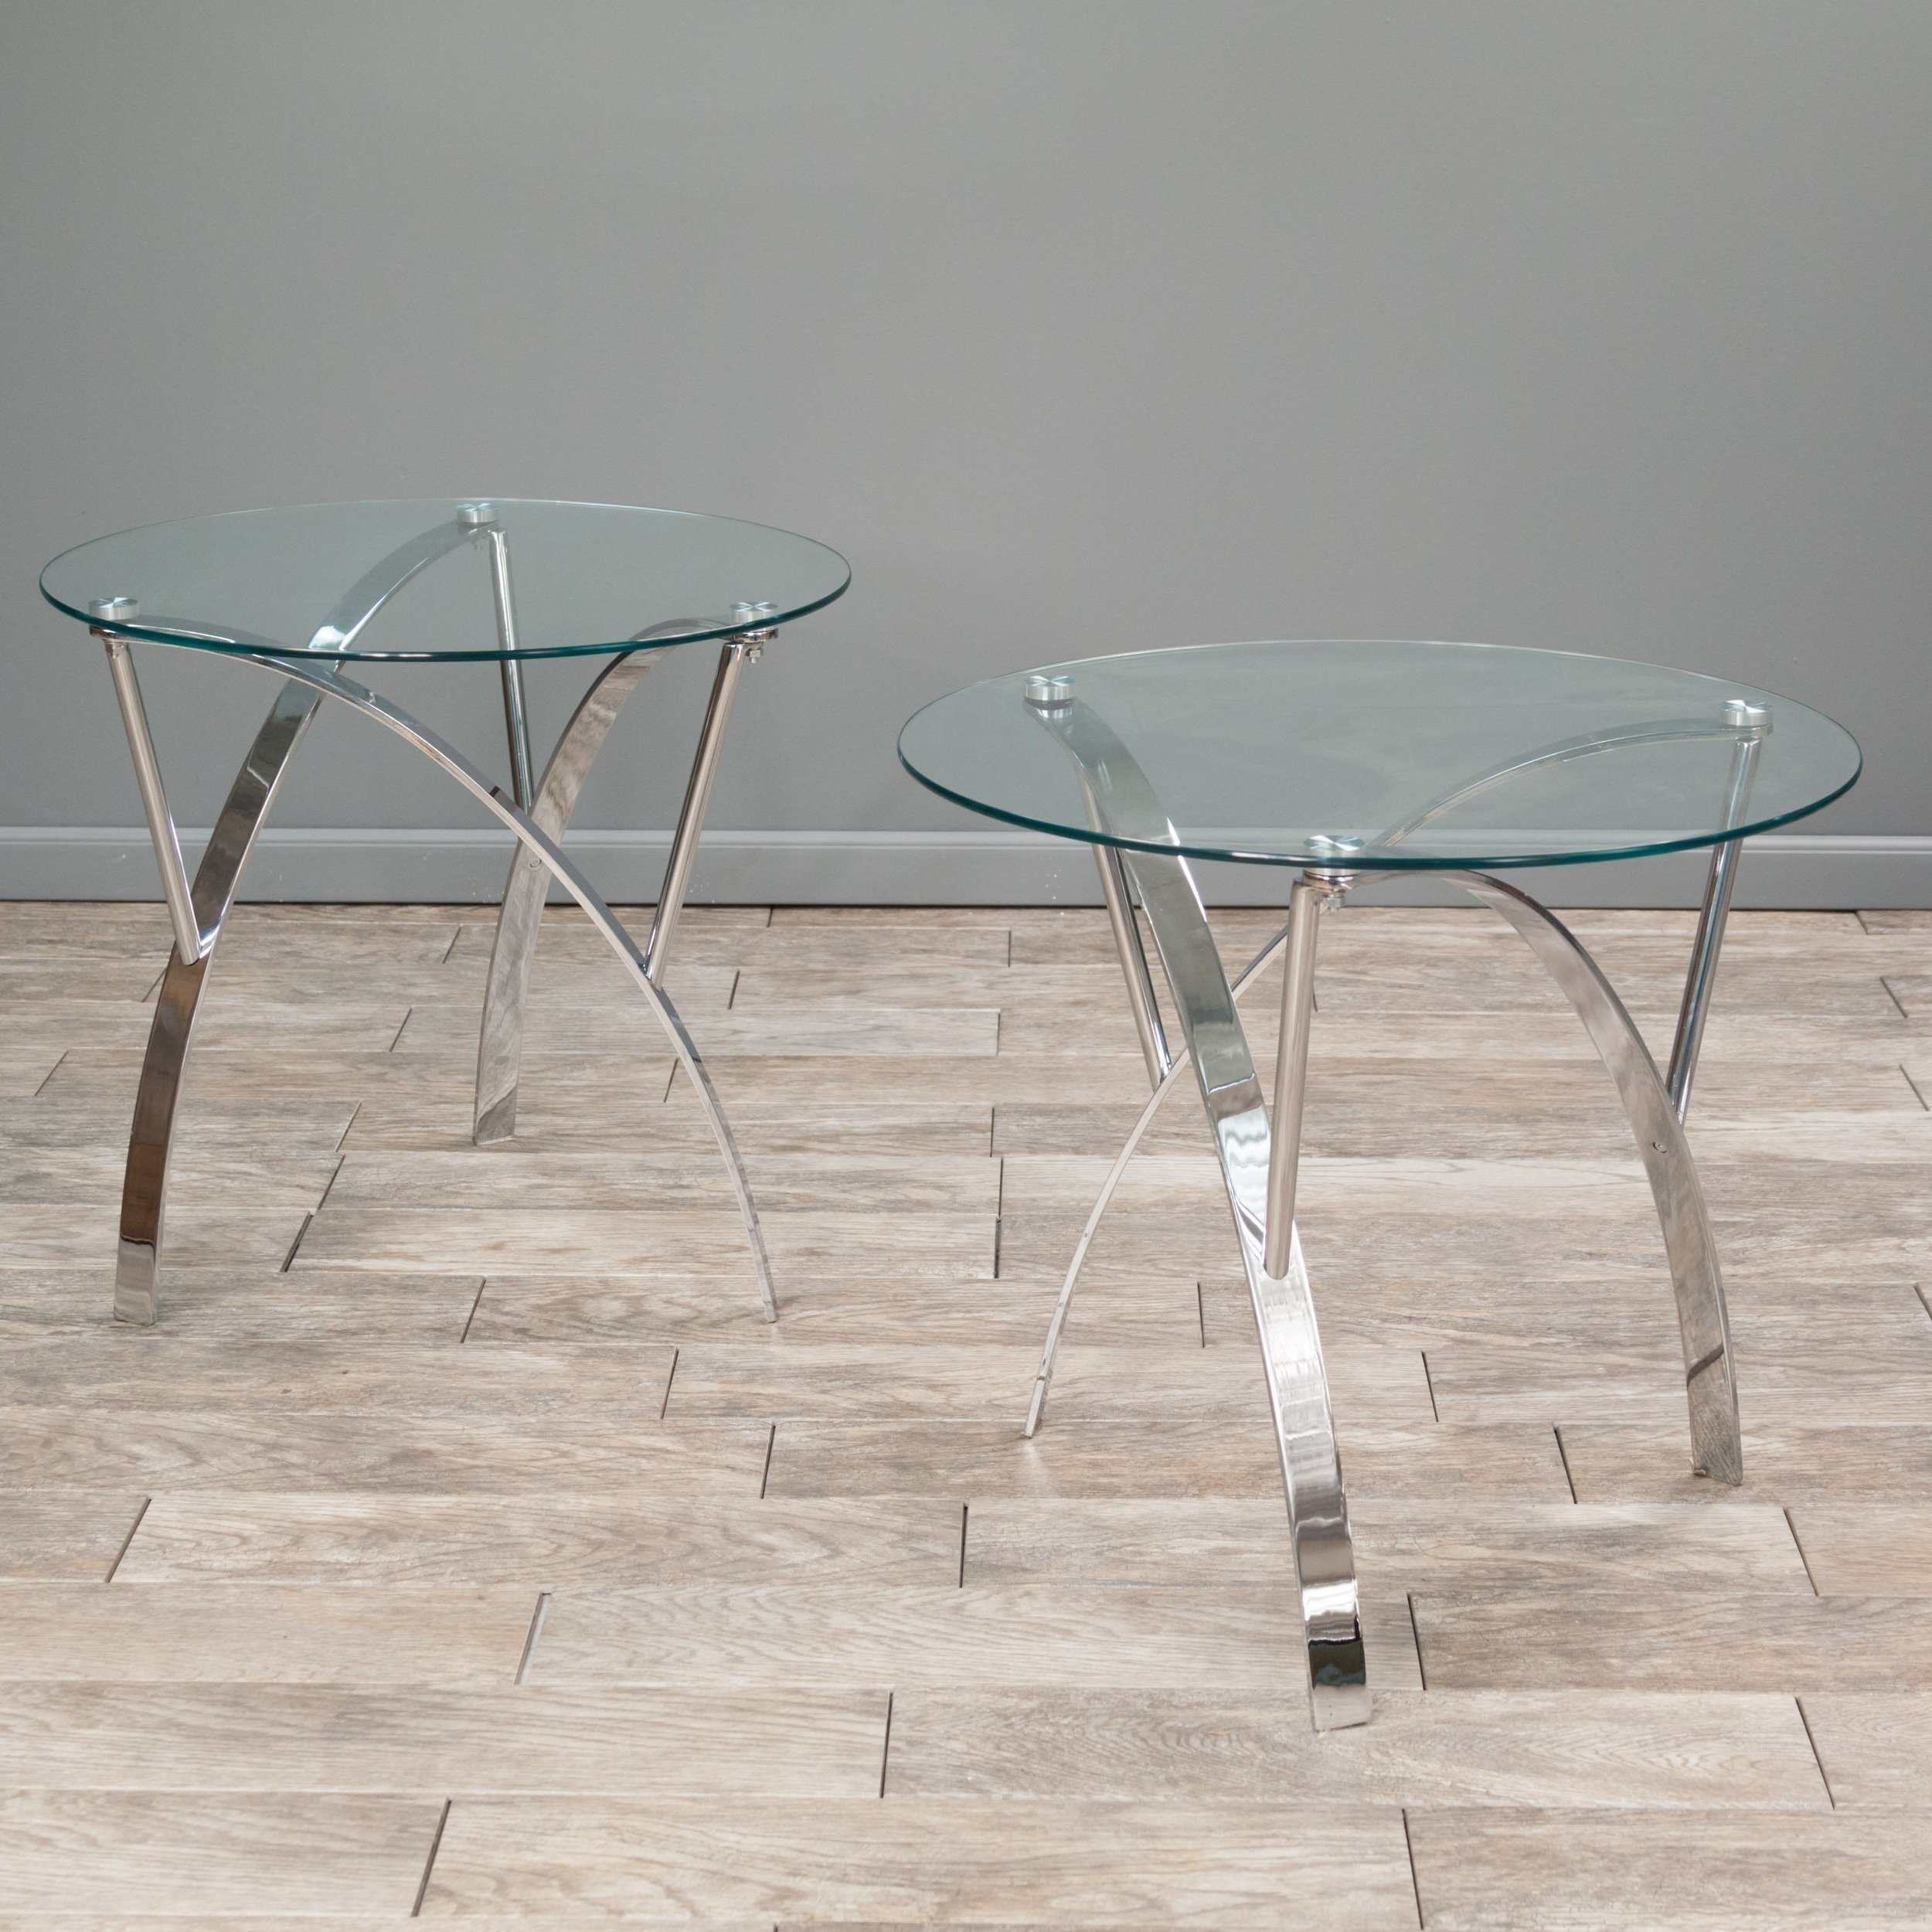 Modhaus Set Of 2 Modern Art Deco Round Glass Style Chrome Silver Metal Accent Stool Side End Table With Glass Top Includes Living Tm Pen Buy Online In Qatar At Qatar Desertcart Com Productid